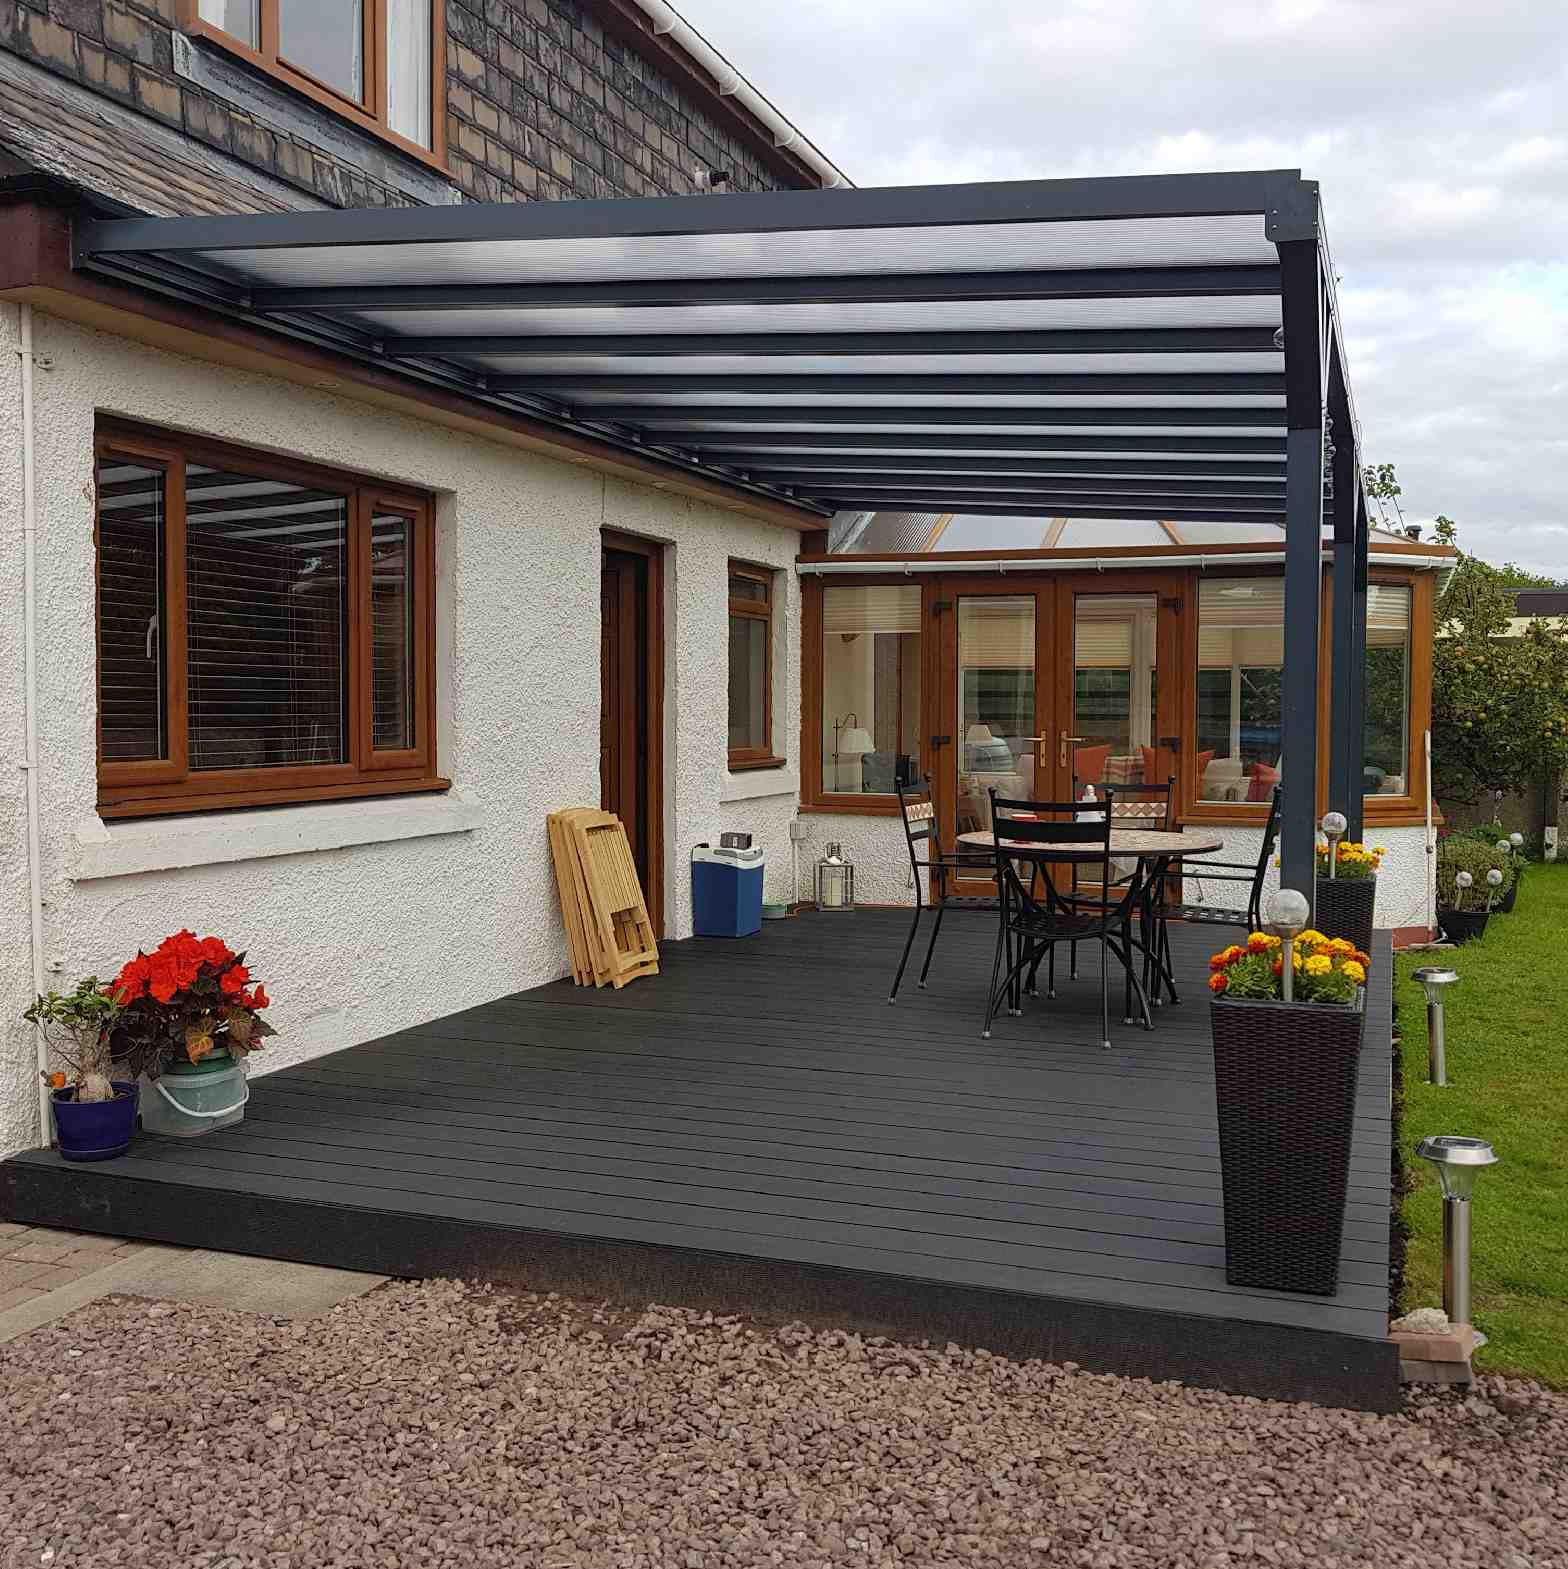 Buy Omega Verandah, Anthracite Grey, 6mm Glass Clear Plate Polycarbonate Glazing - 10.0m (W) x 4.0m (P), (5) Supporting Posts online today